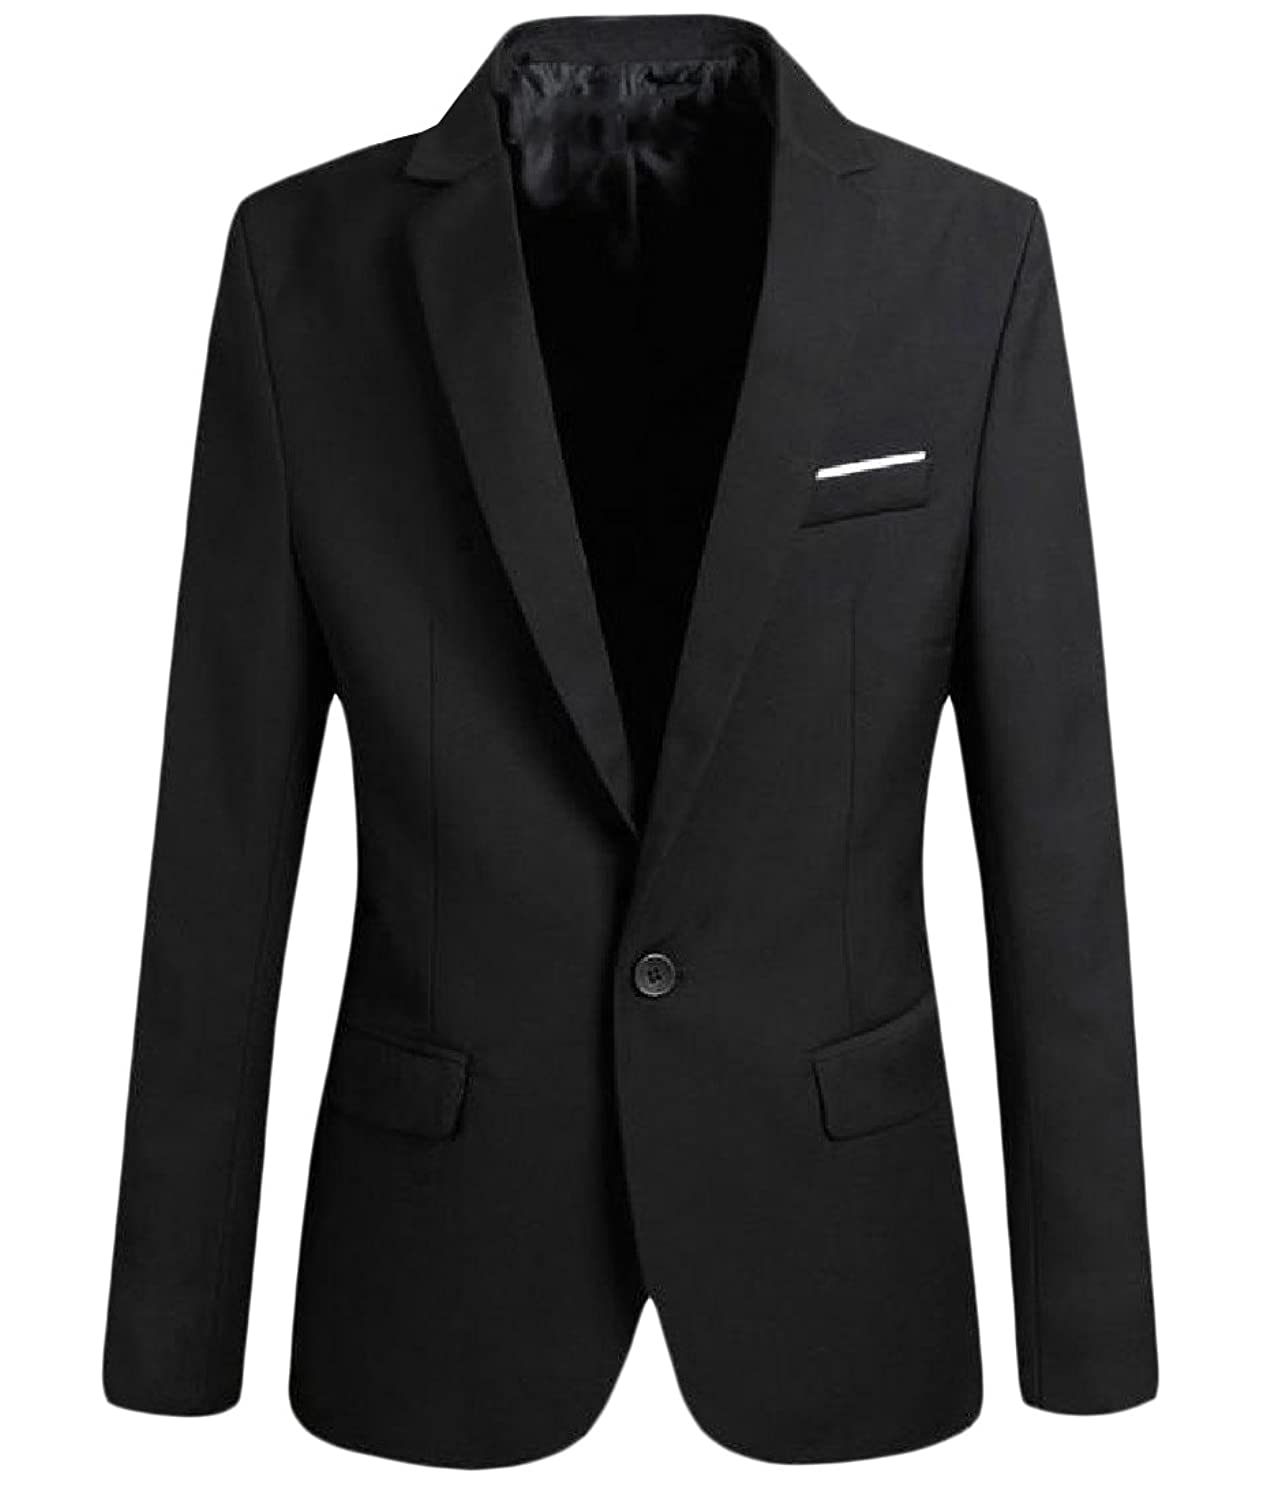 New Comfy Men's Stylish Single Button Solid Color Coats Jacket Blazer for cheap